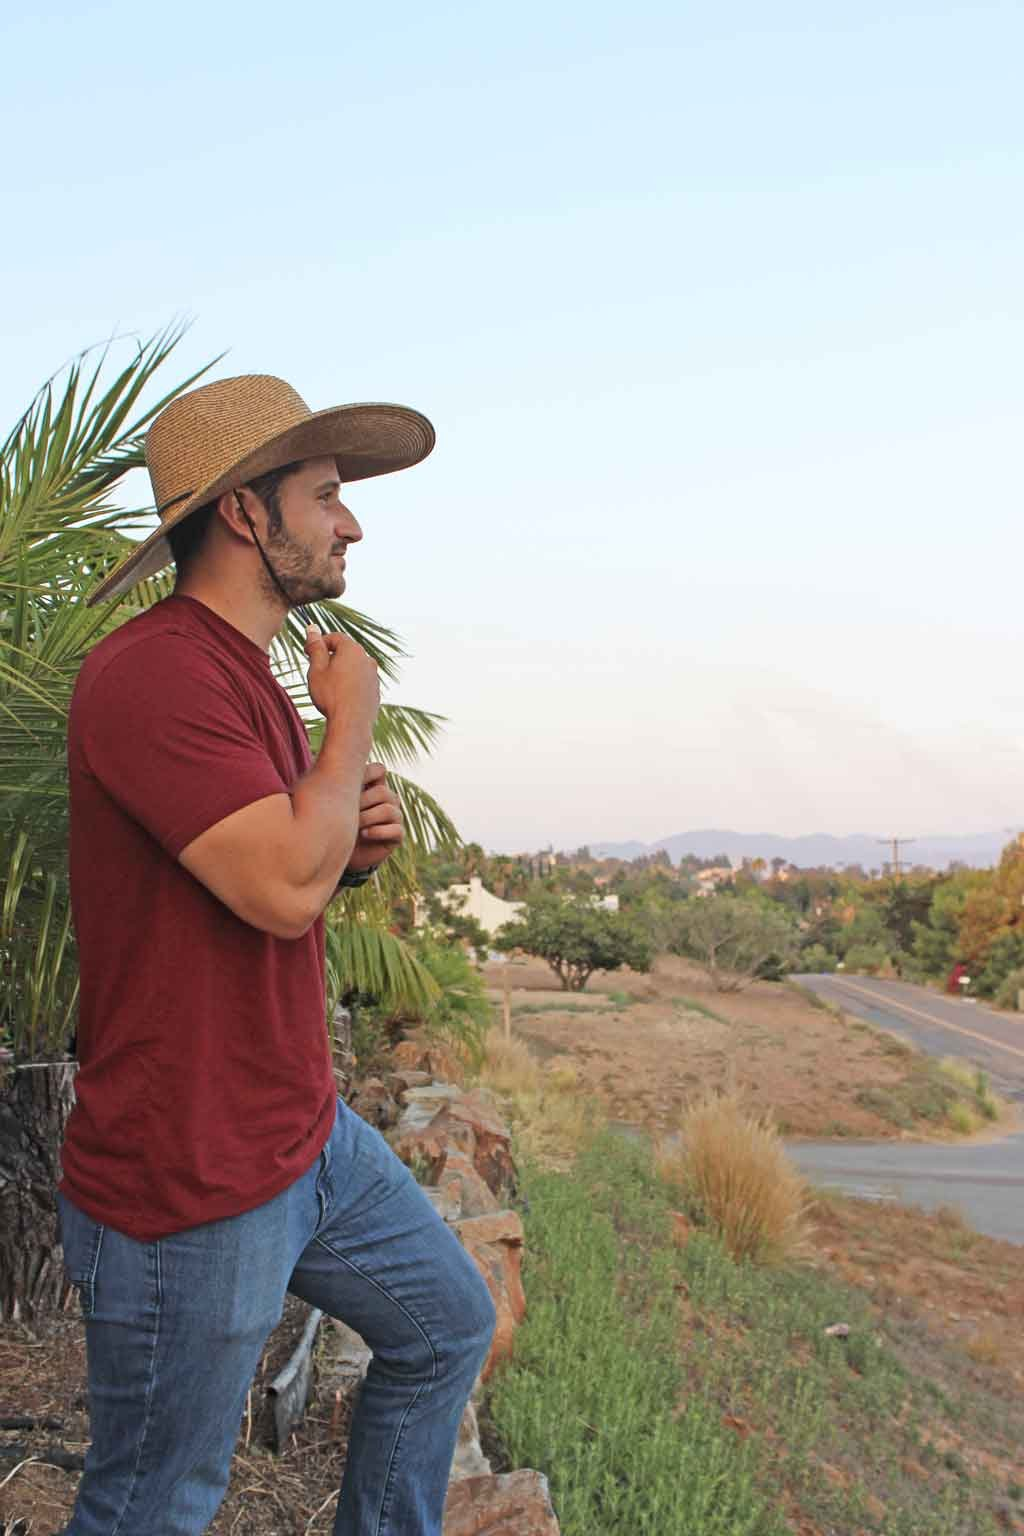 El Ranchero Extra Large Brim Straw Sun Hat for Men & Women with Chin Strap Fashionable & Perfect for Gardening Coffee (2XLarge) by sungrubbies (Image #3)